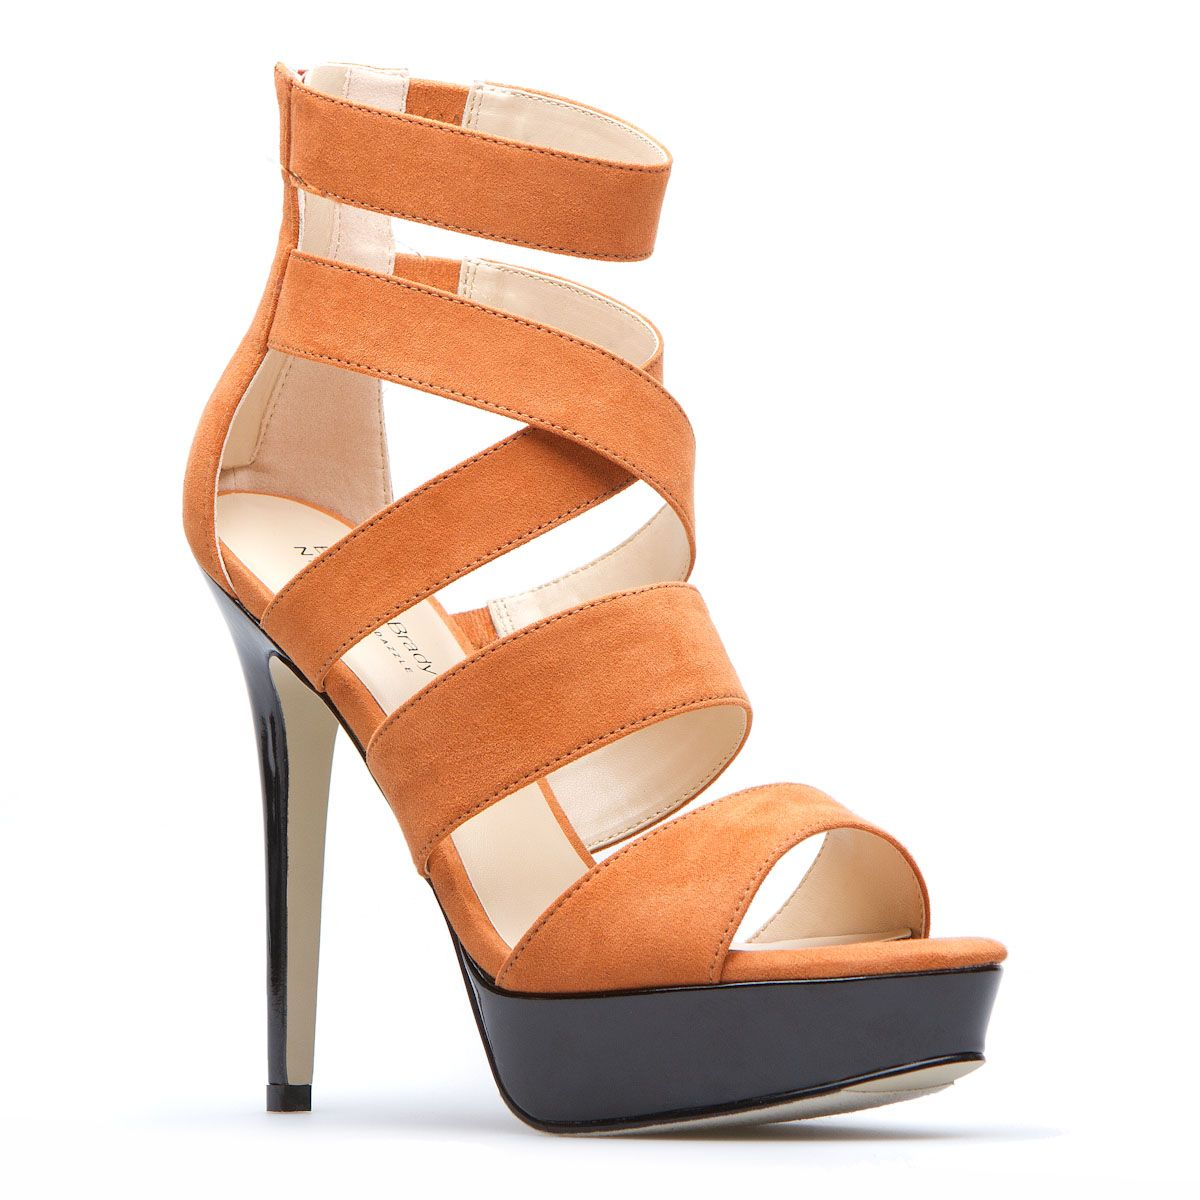 high-heel sandal funky enough for me and great color to cheer on the Texas Longhorns...!!!  lol